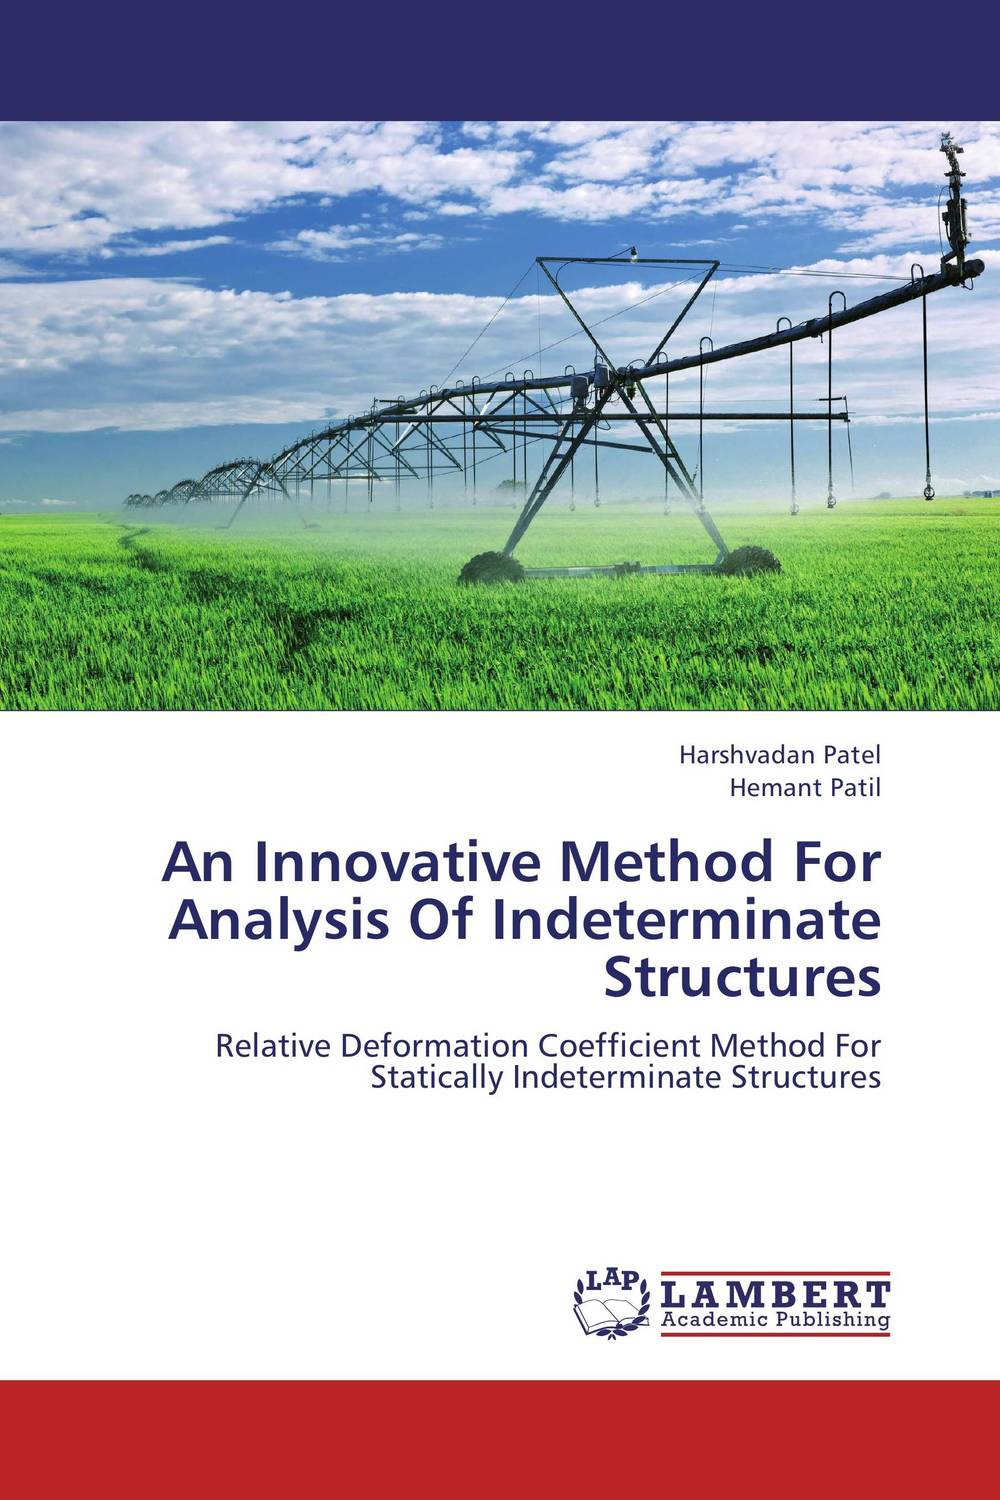 An Innovative Method For Analysis Of Indeterminate Structures  harshvadan patel and hemant patil an innovative method for analysis of indeterminate structures